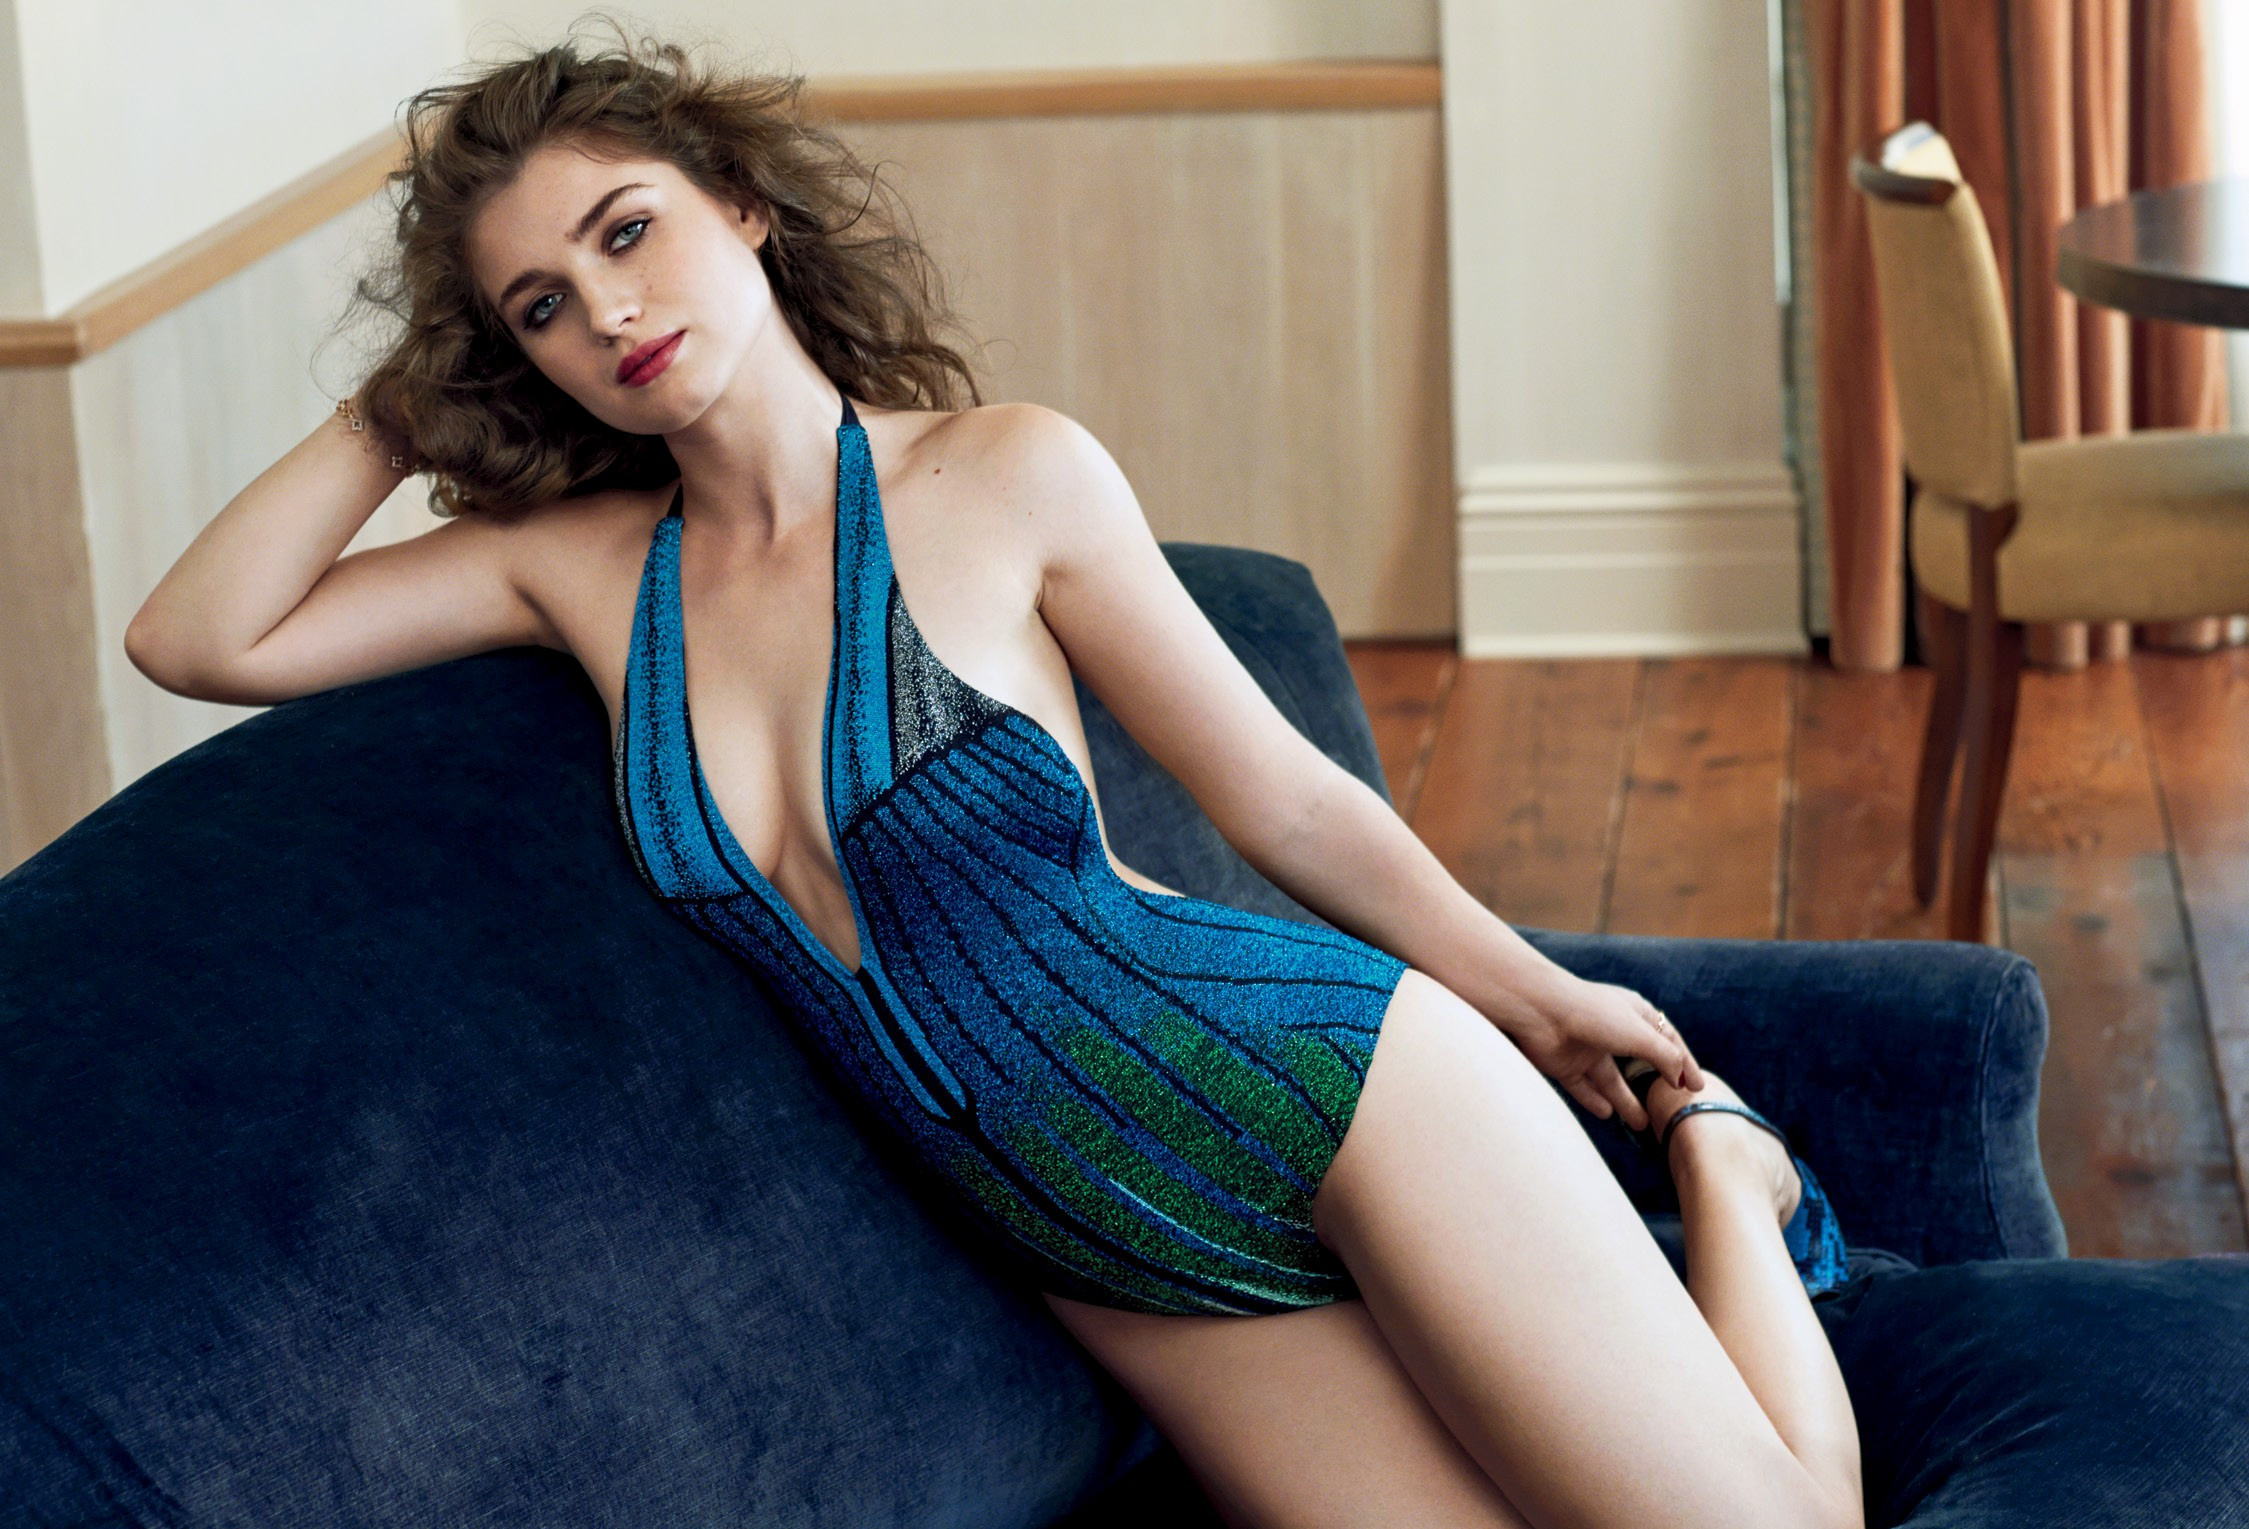 Eve Hewson Sexy 3 TheFappening.nu